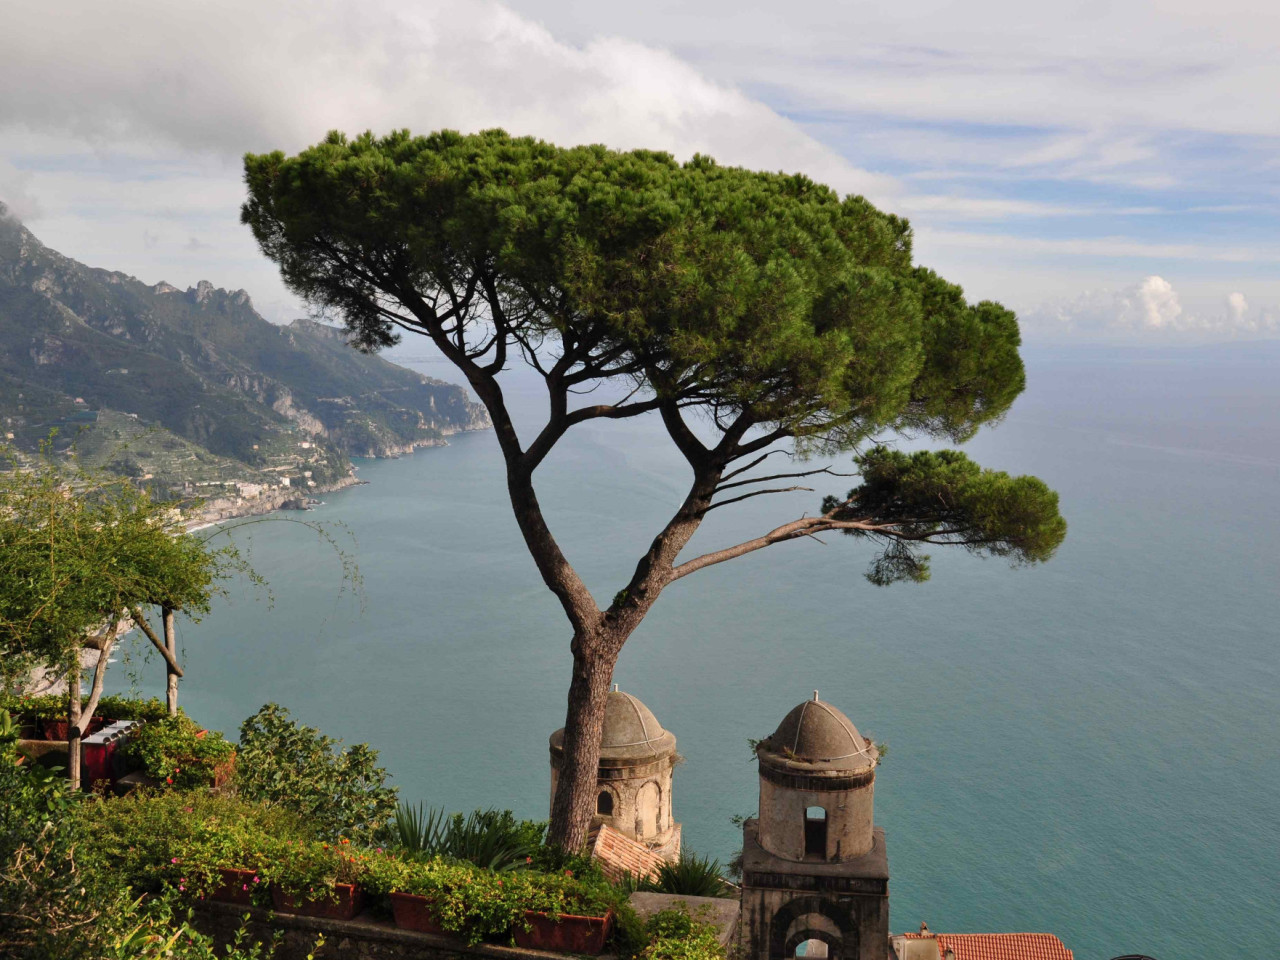 Sightseeing Tours - Daily excursions from Sorrento - Amalfidrive